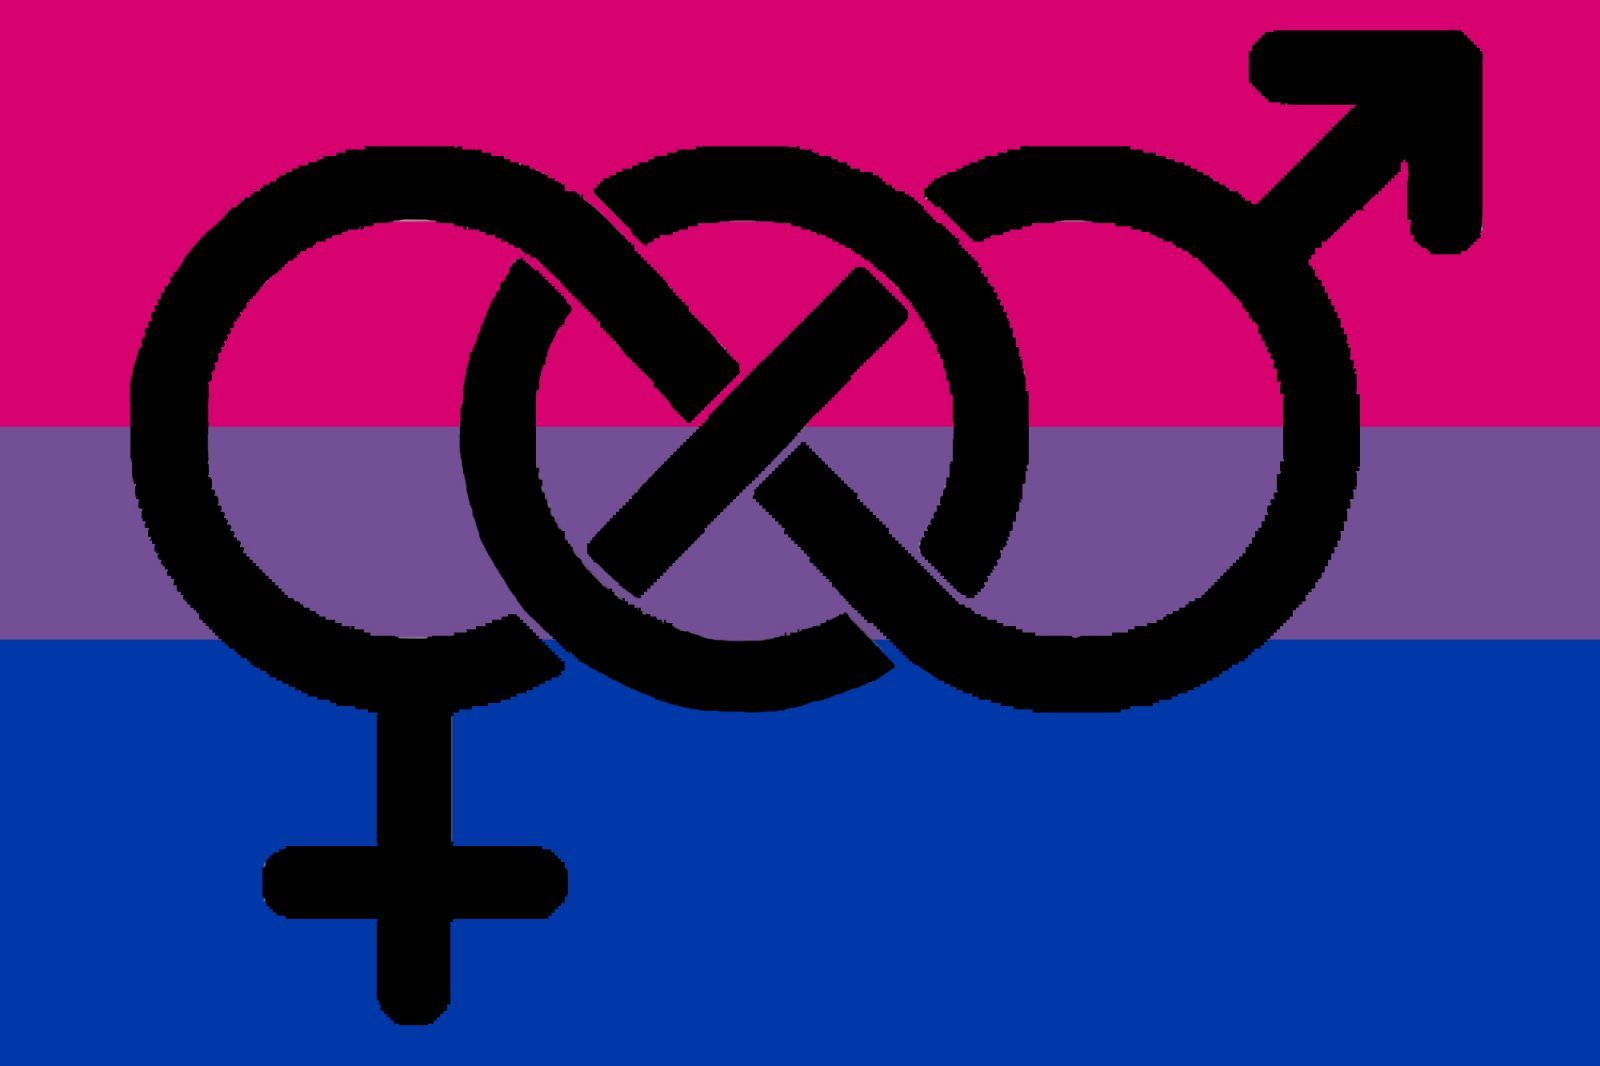 What is your symbol gallery symbol and sign ideas quiz result what is your sexuality female edition me myself quiz result what is your sexuality buycottarizona